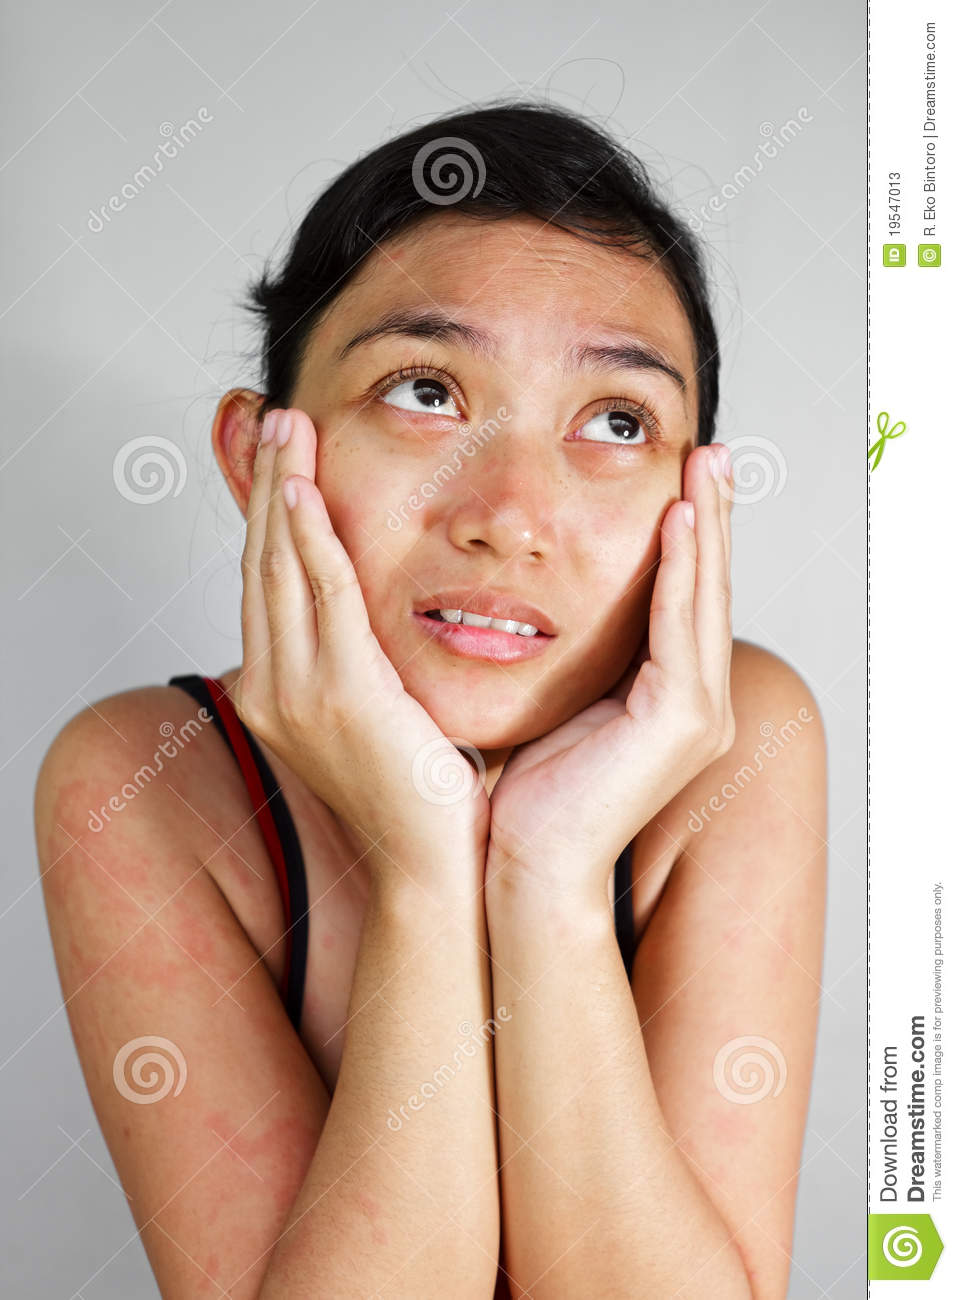 Long woman with facial rash certainly not